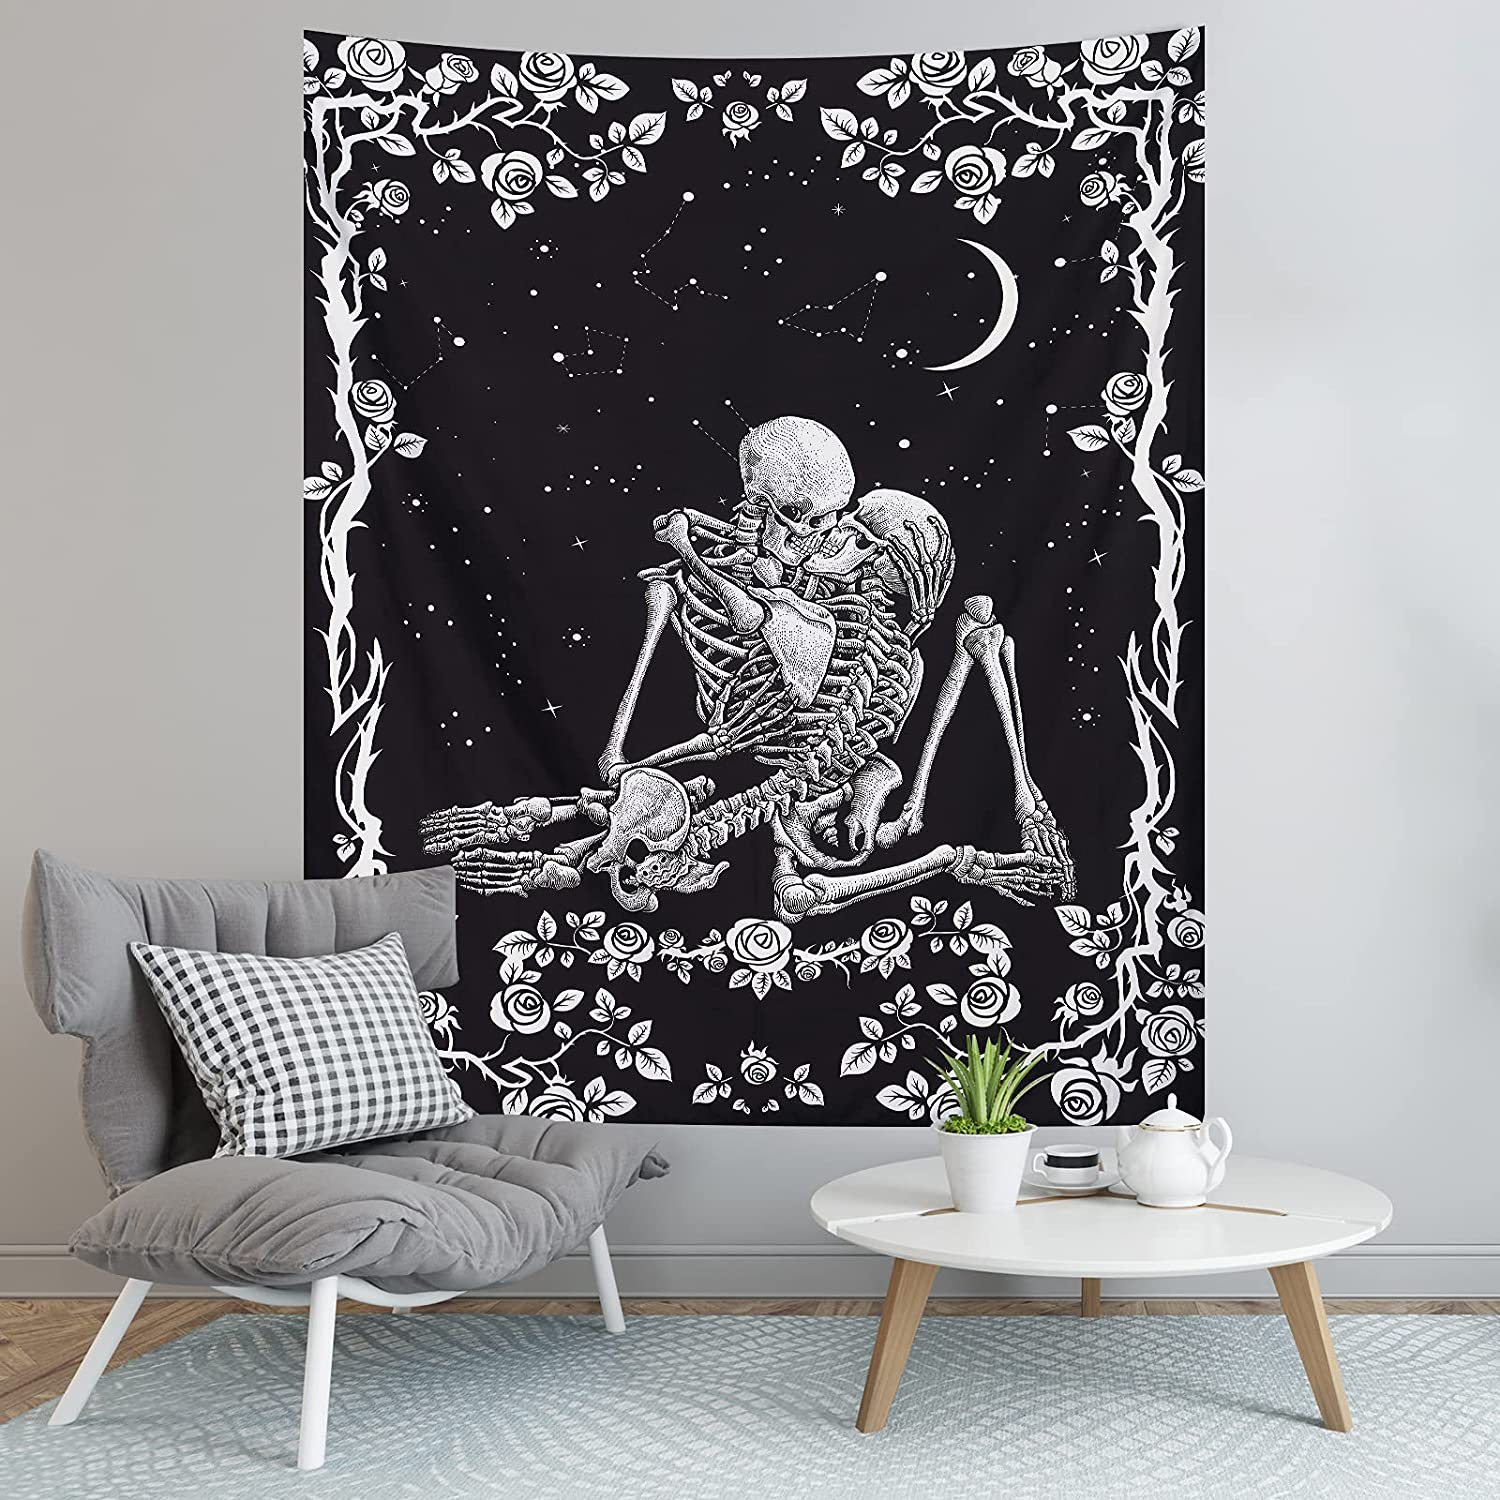 Pocass Skull Tapestry Black and White The Kissing Lovers Tapestry Wall Hanging Romantic Tarot Tapestry Aesthetic Human Skeleton Tapestries for Bedroom, 51.2